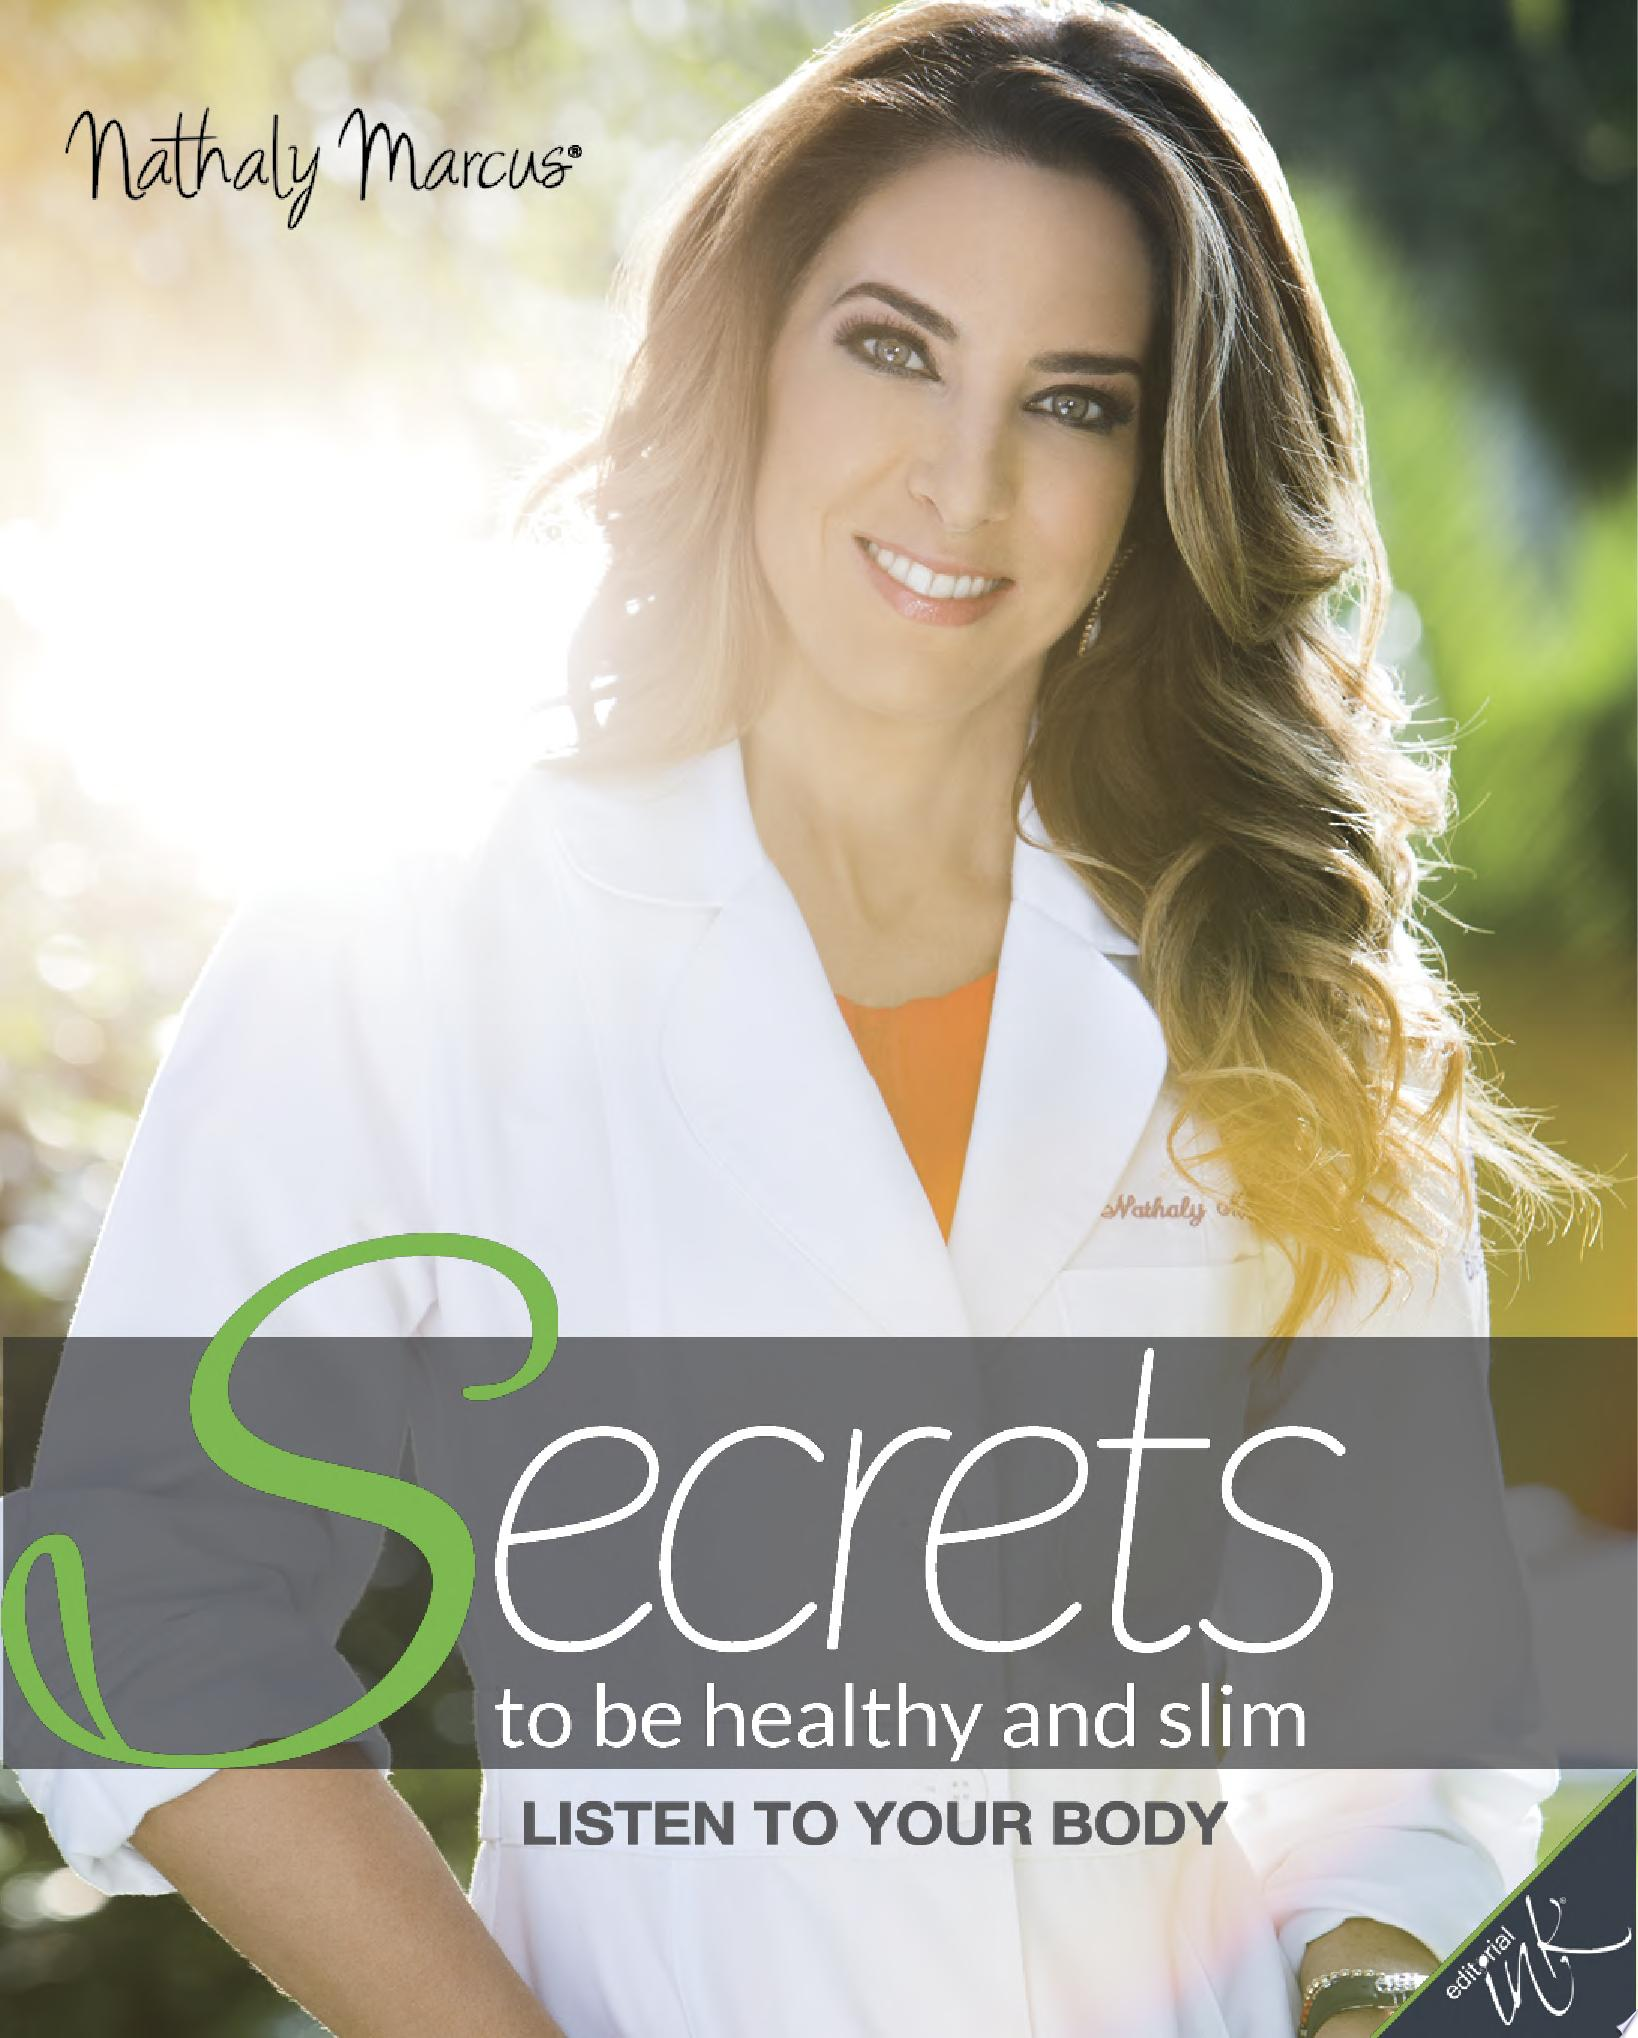 Secrets to be healthy and slim